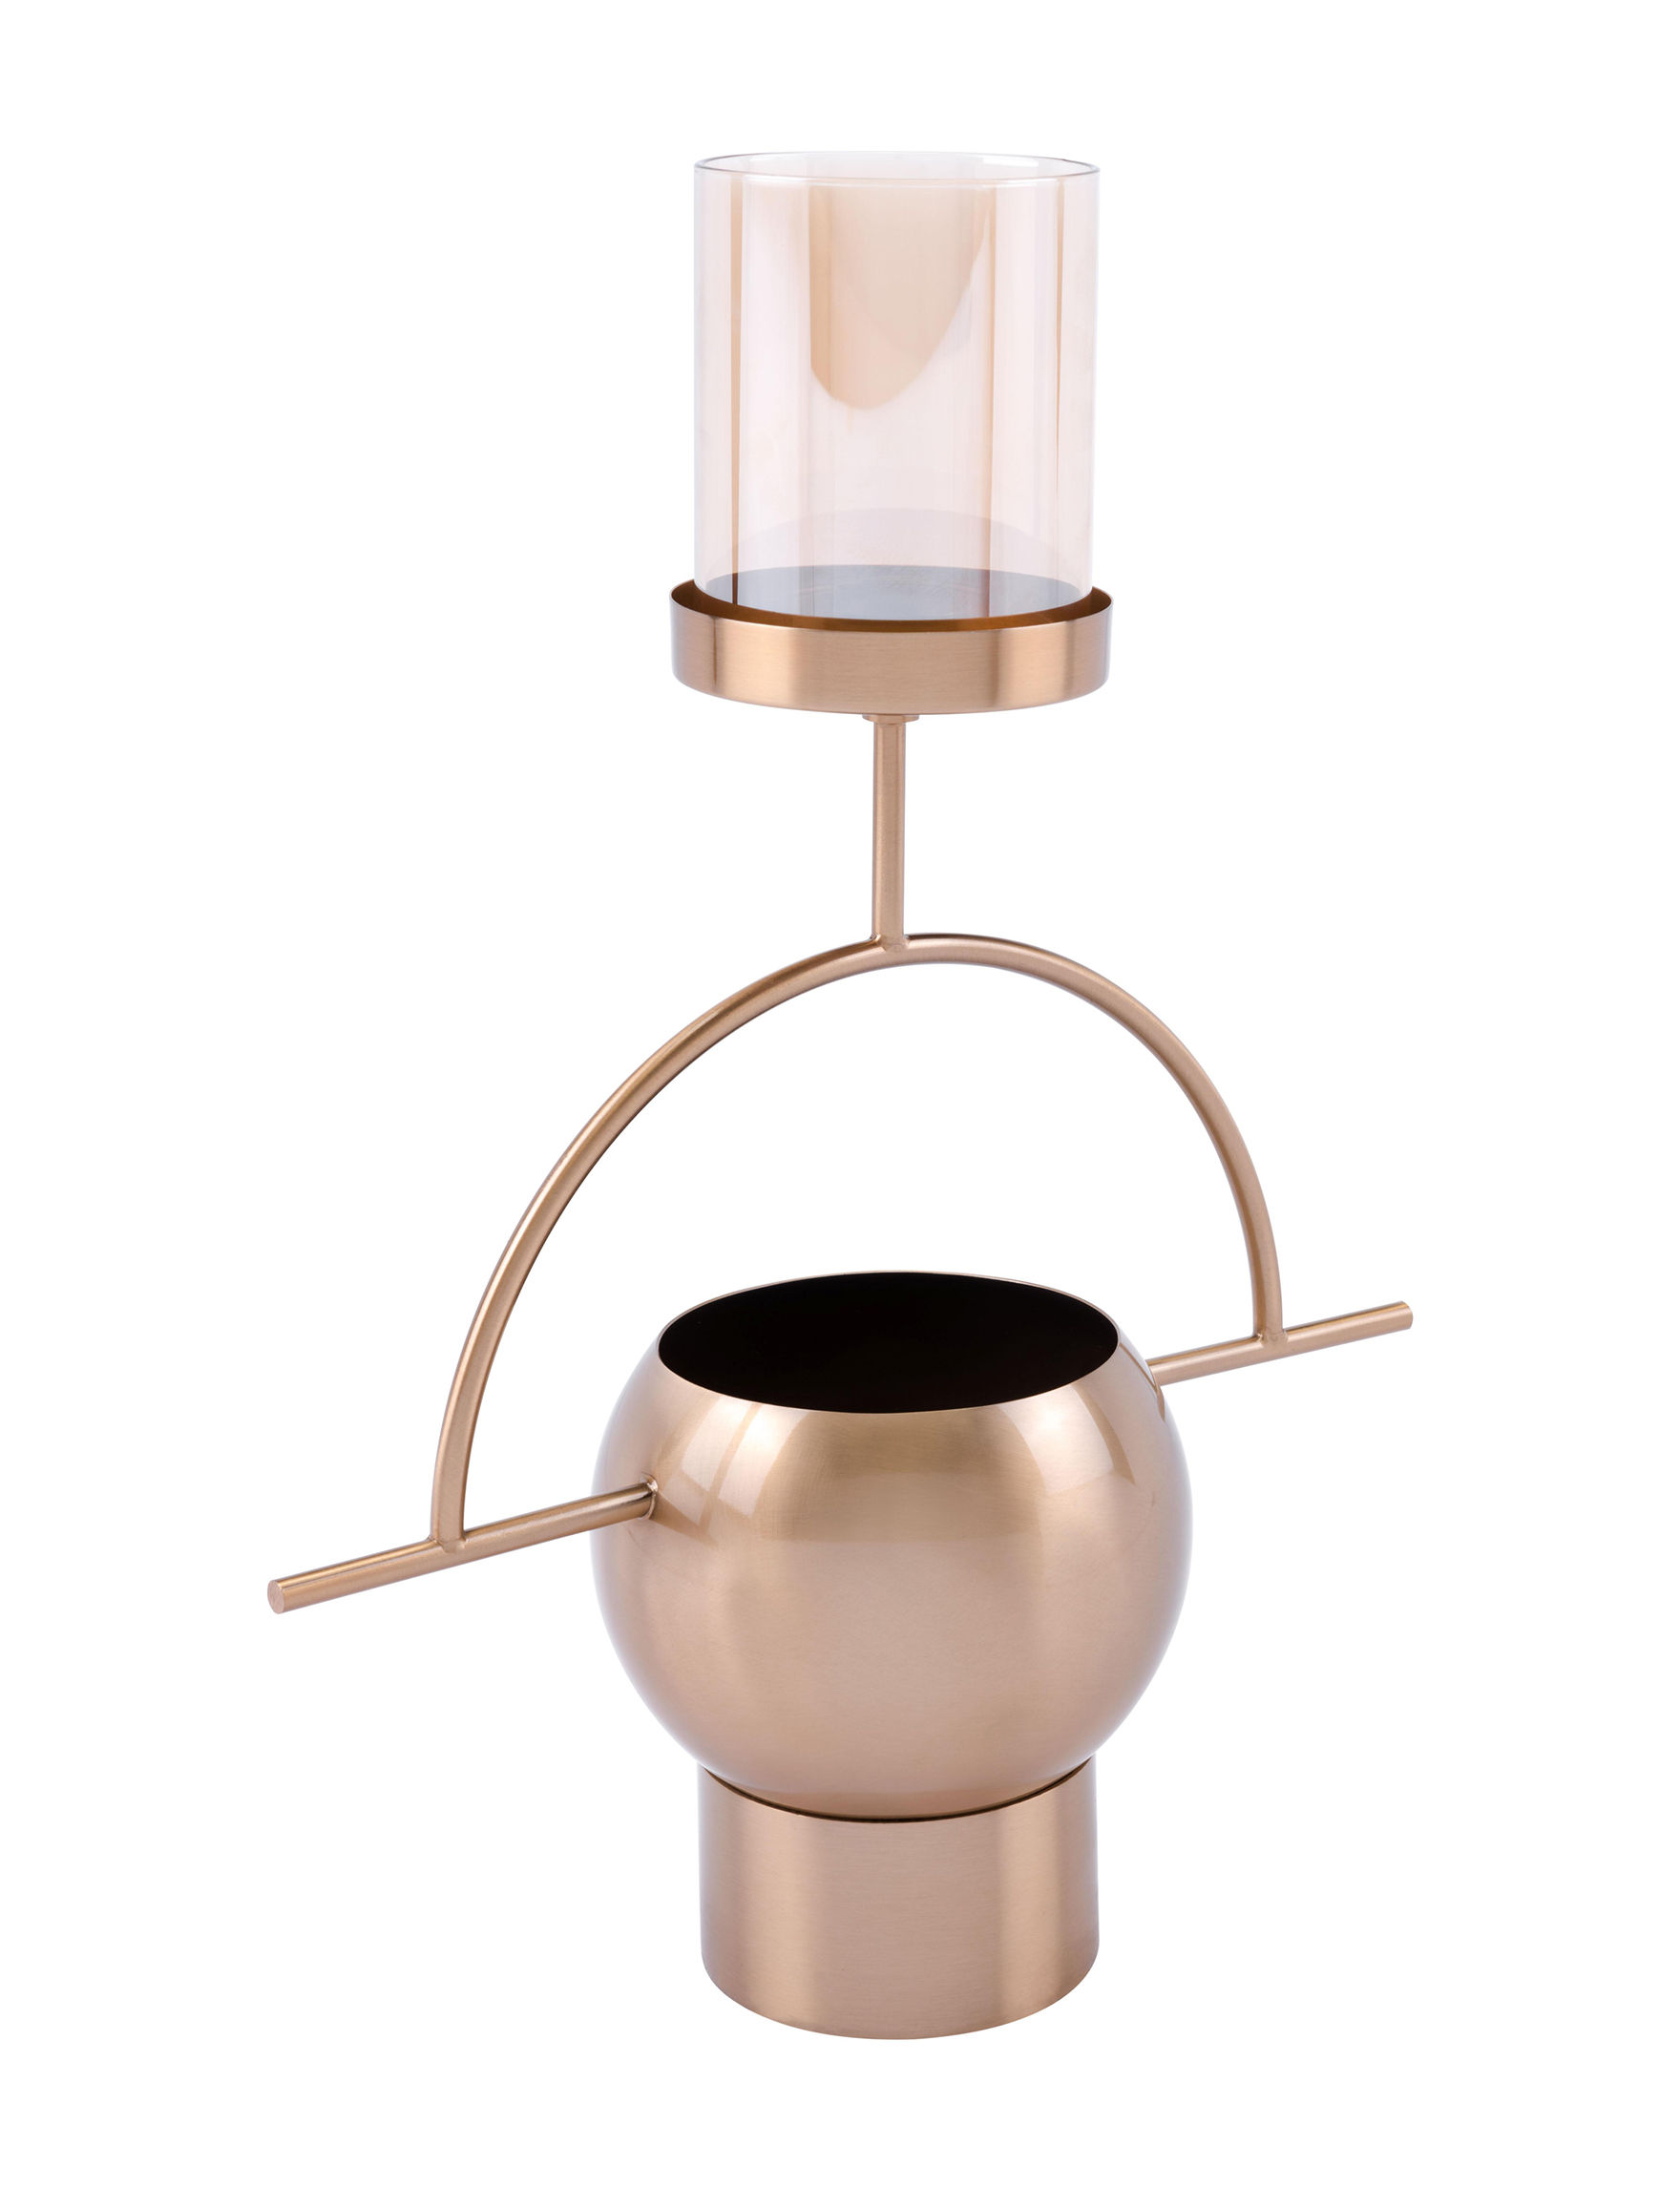 Zuo Modern Gold Candle Holders Decorative Objects Candles & Diffusers Home Accents